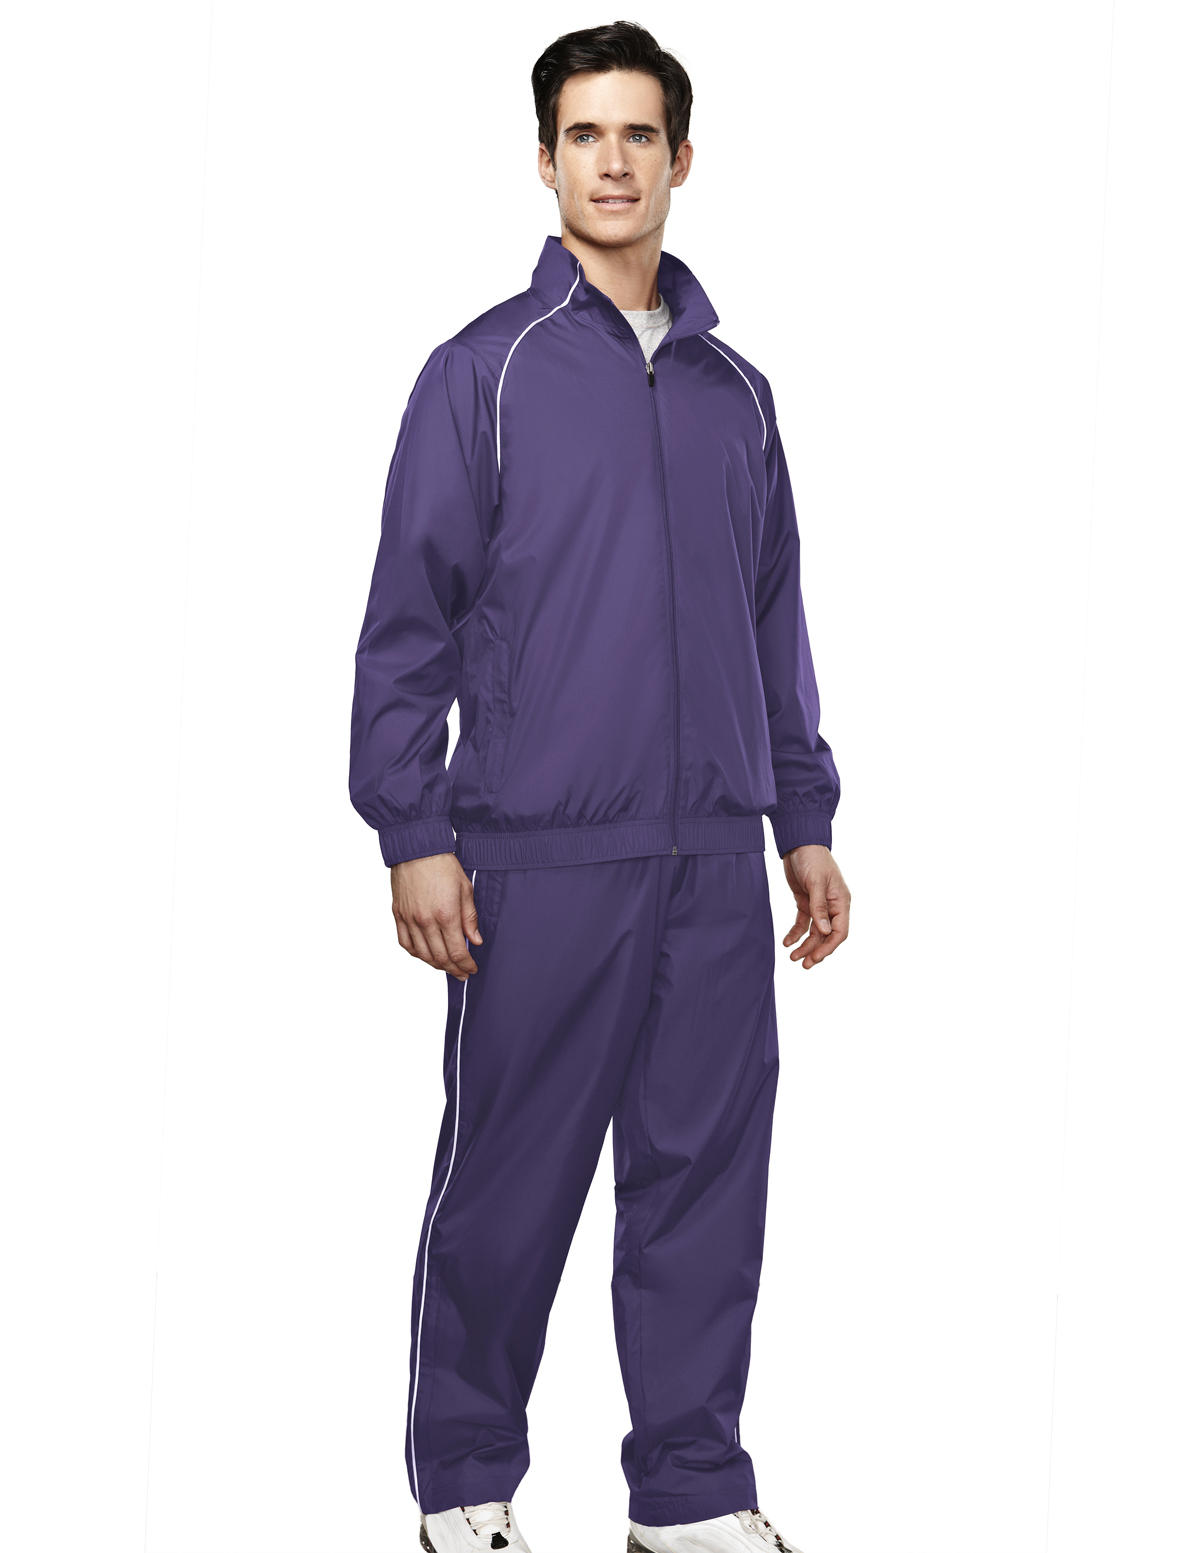 Tri-Mountain Charger 2347 Windproof Pant With Mesh Lining, Medium, Purple